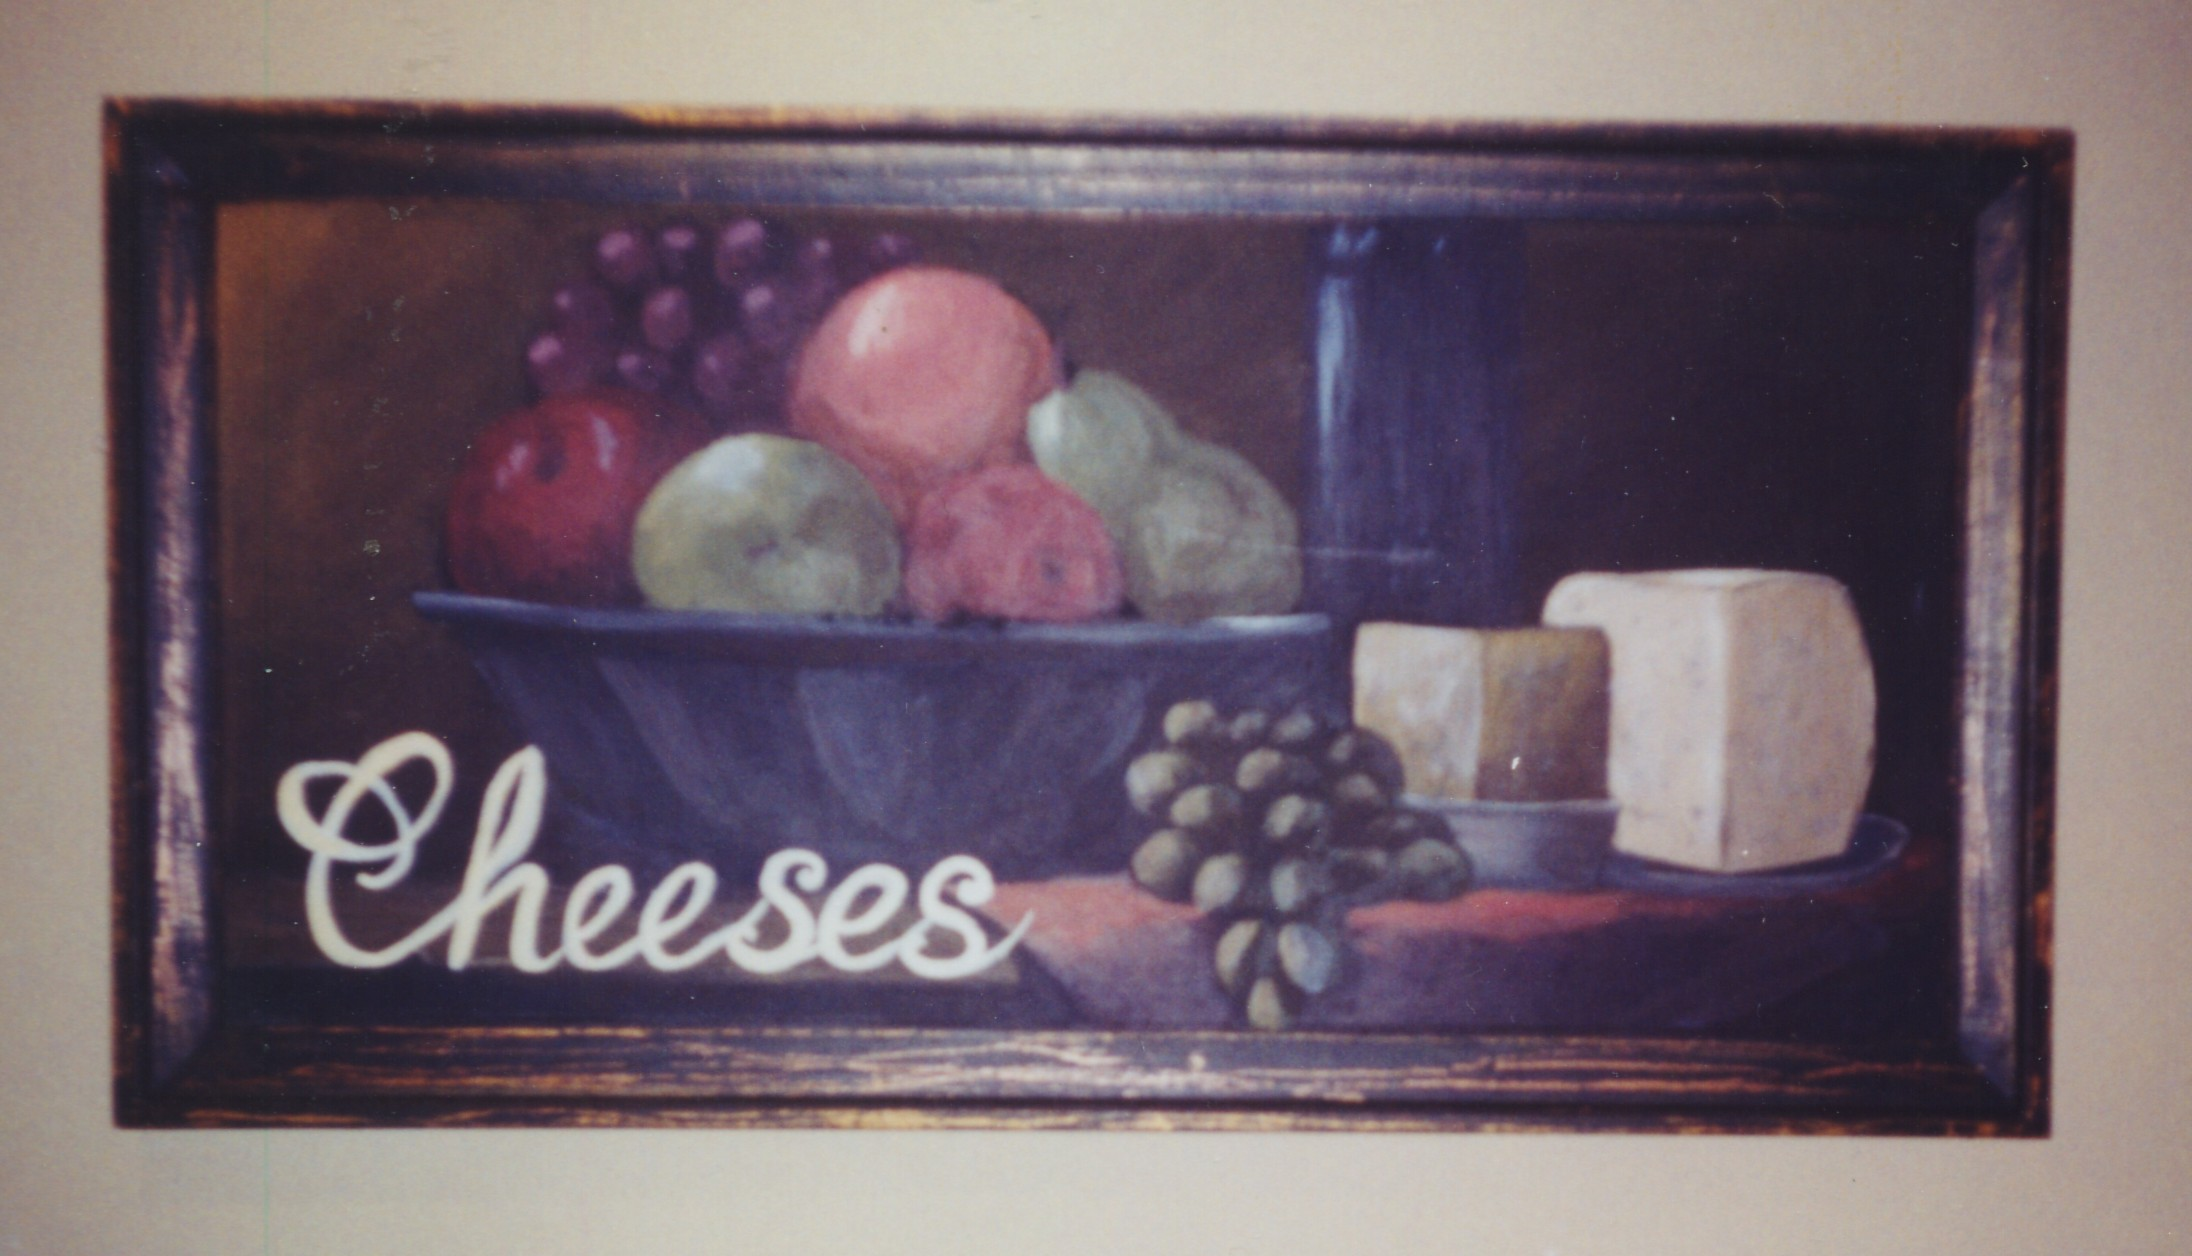 Murals By Marg Meat on the Beach Cheeses Sign.jpg